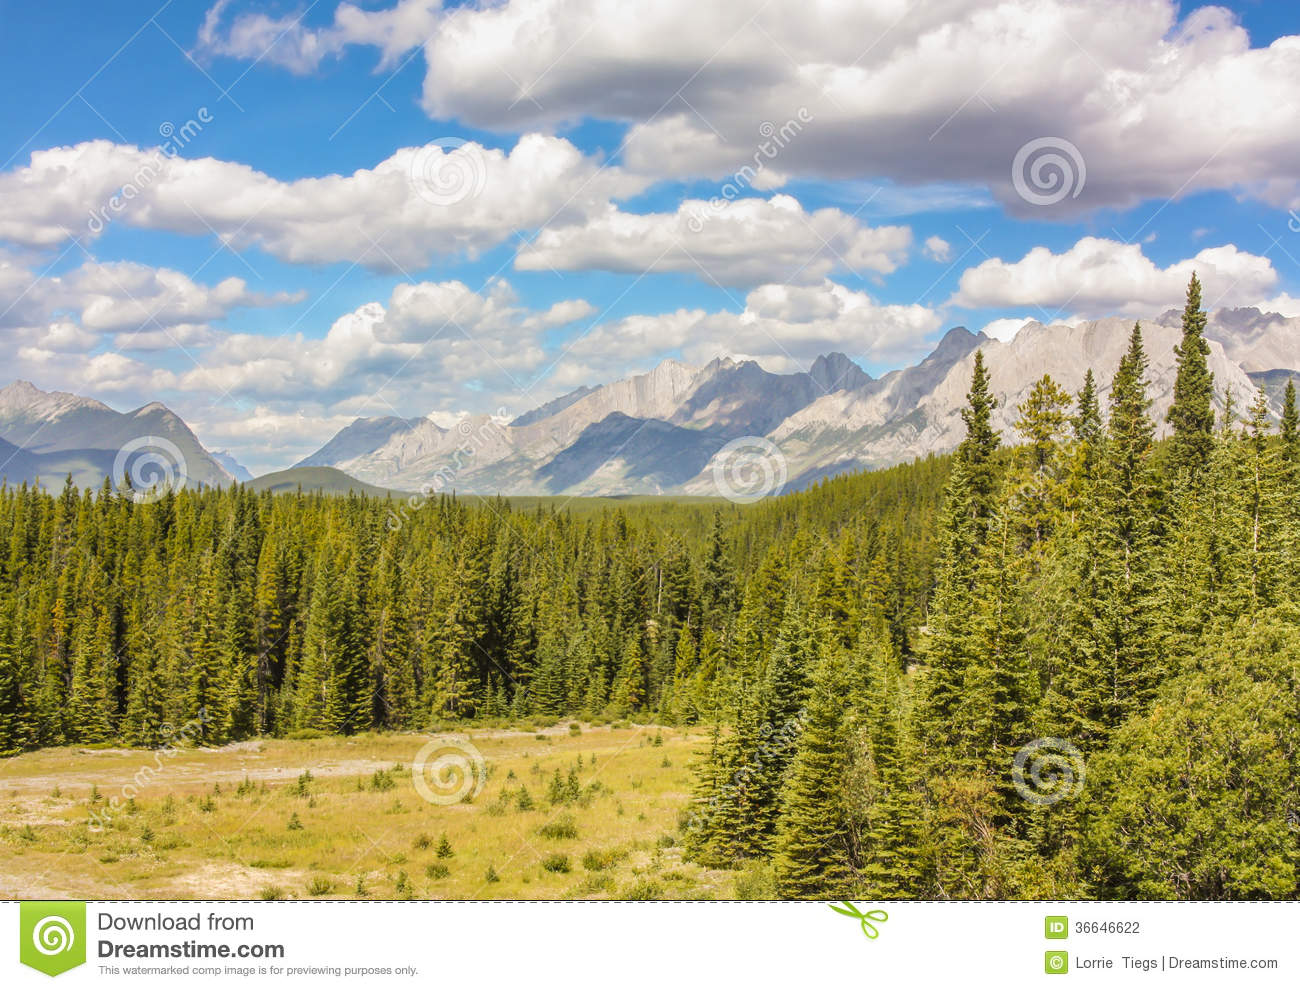 Pine Tree Mountain Valley Stock Photography - Image: 36646622